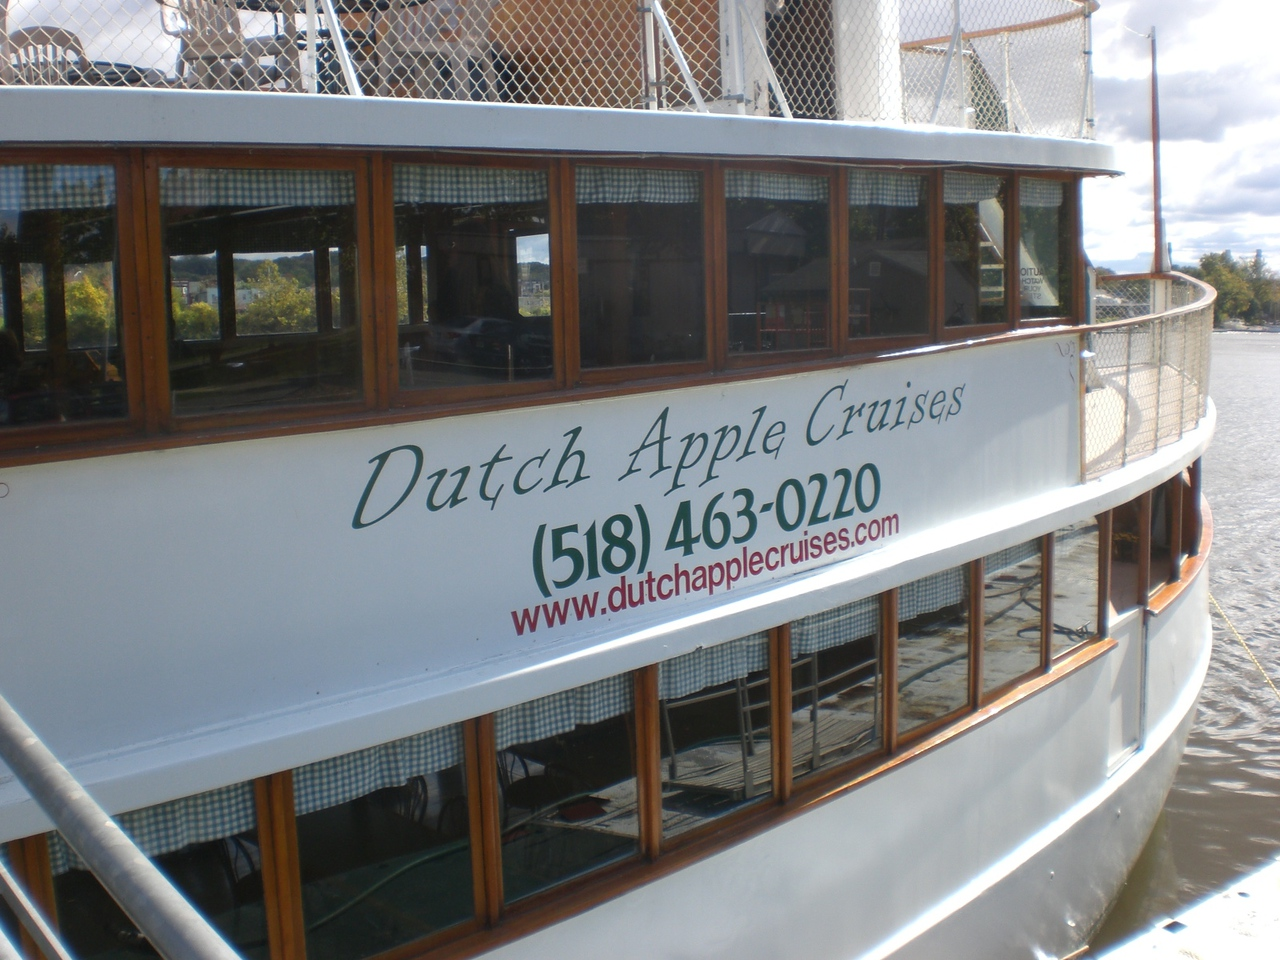 Dutch Apple Cruises & Tours  141 Broadway  Intersection of Broadway & Quay Sts.  (next to USS Slater)  Albany, NY 12202  Region: Downtown Area  Phone: (518) 463-0220  Fax: (866) 369-2331  Send E-Mail   Visit Website